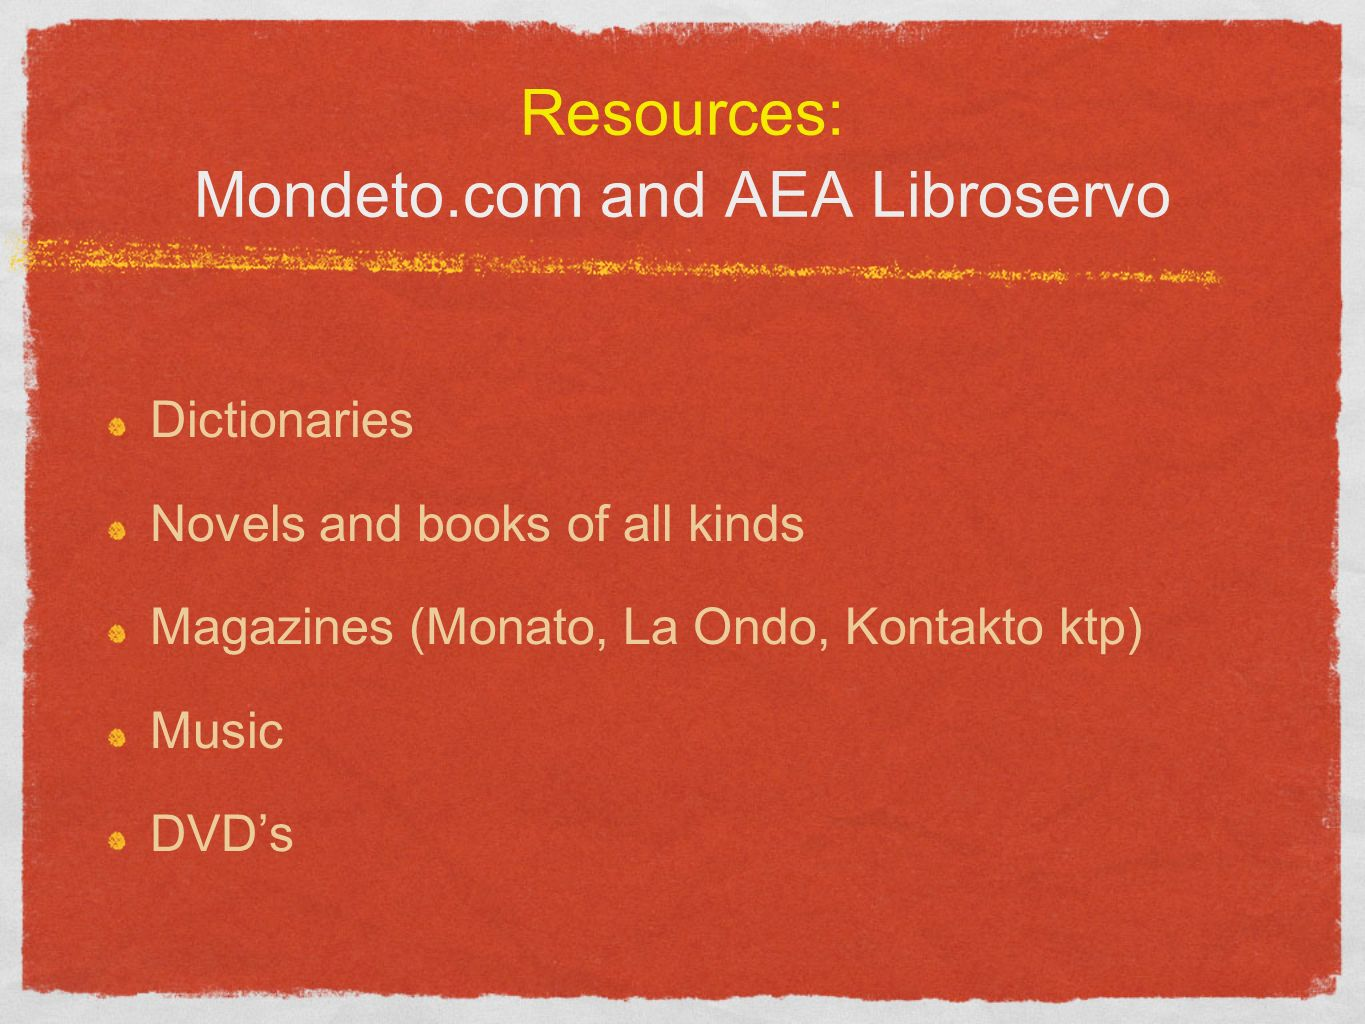 Resources: Mondeto.com and AEA Libroservo Dictionaries Novels and books of all kinds Magazines (Monato, La Ondo, Kontakto ktp) Music DVDs